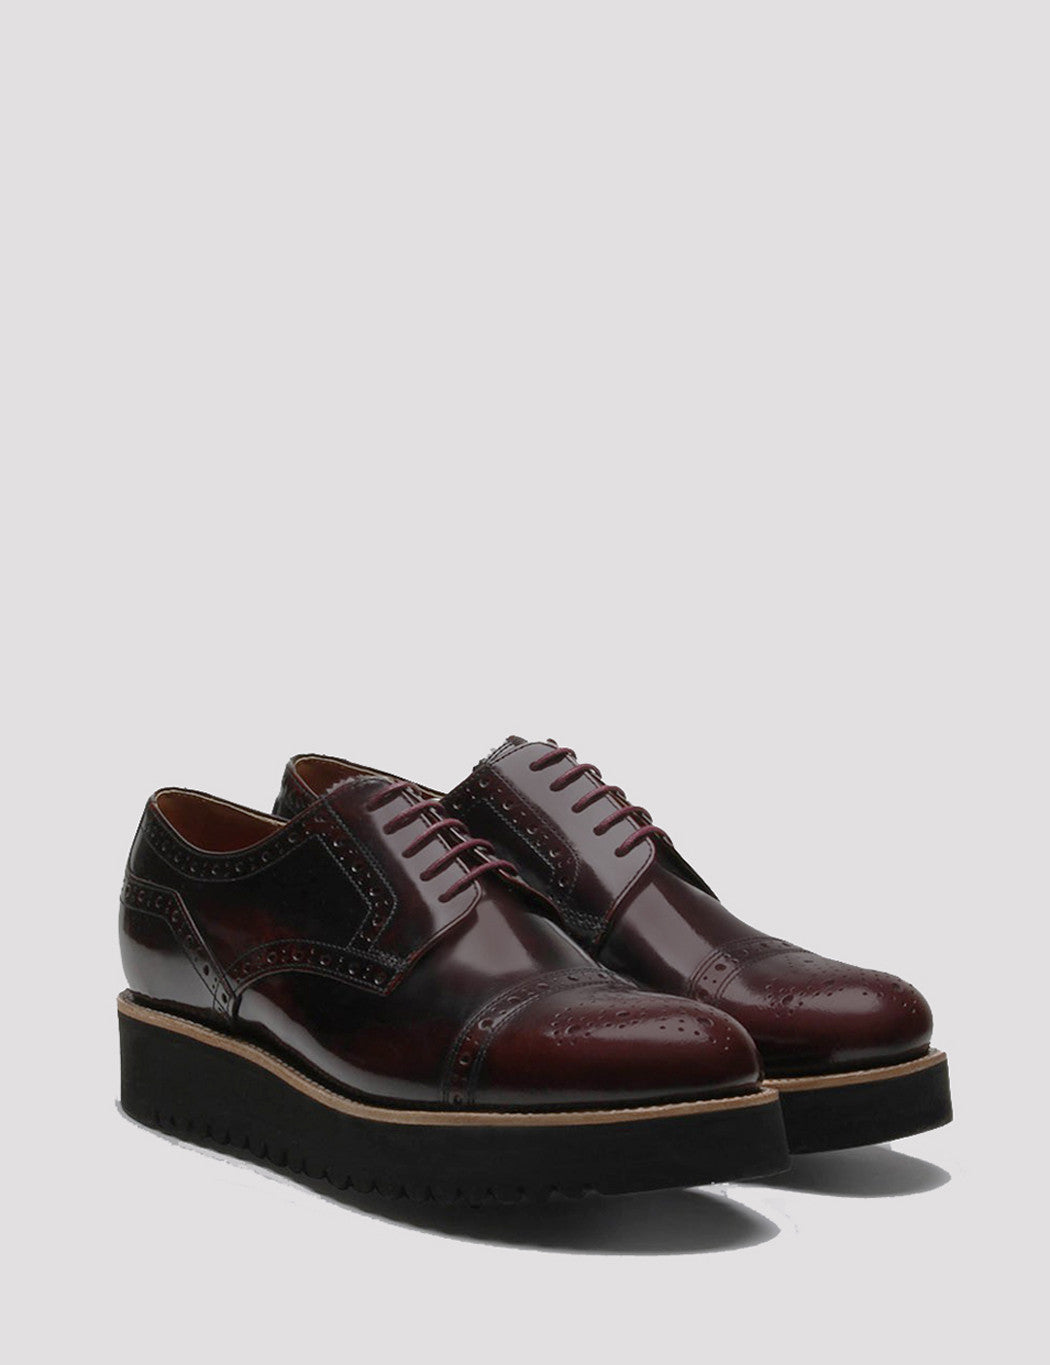 Grenson Womens Lucy Brogue Shoes - Burgundy